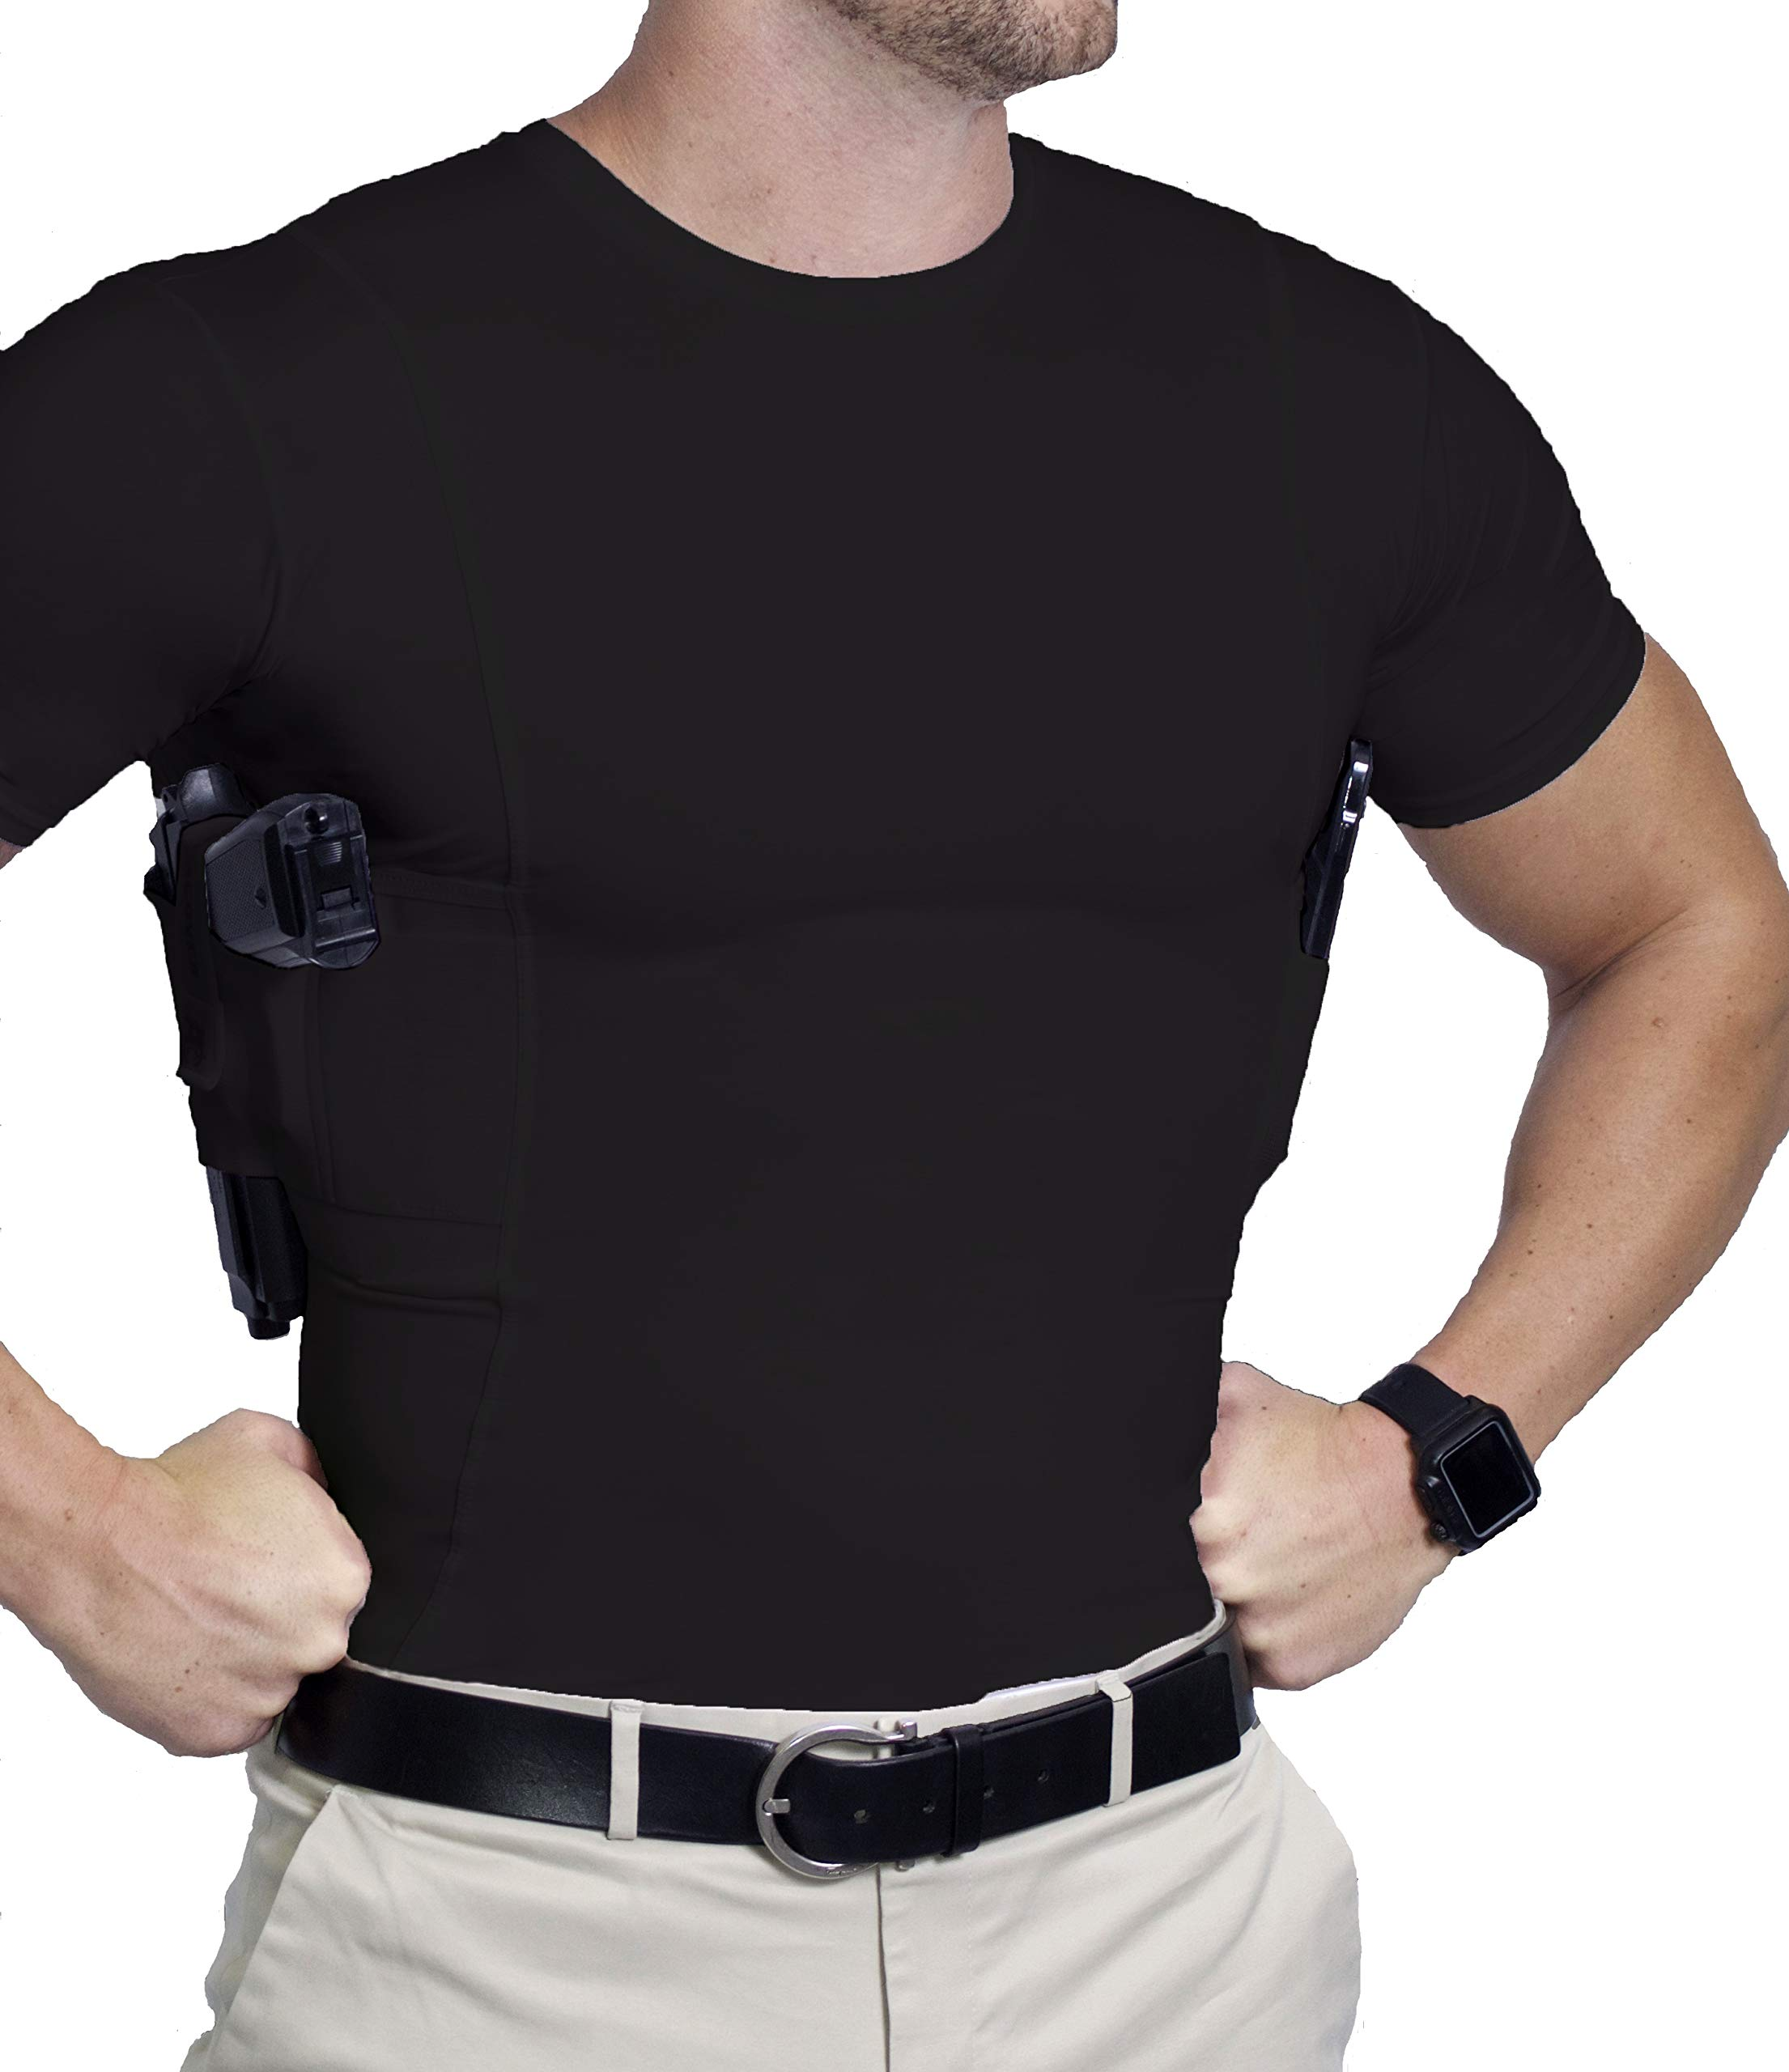 AC Undercover Concealed Carry Crew Neck Tshirt/CCW Tactical Clothing/Concealed Clothing REF. 511 (Black) (Black, Large) by AC Undercover (Image #1)